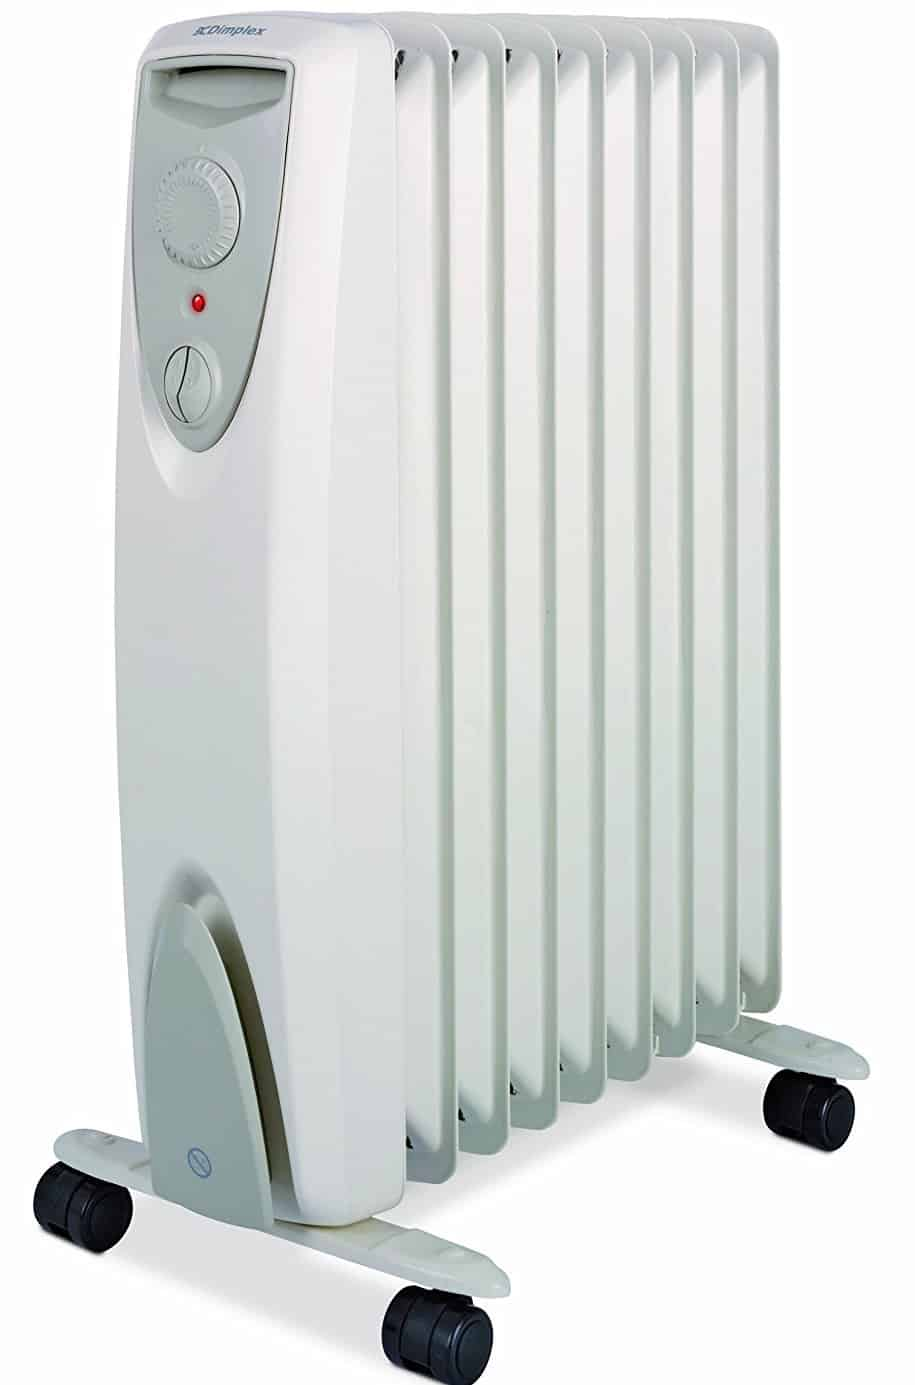 Portable electric Heater – Dimplex